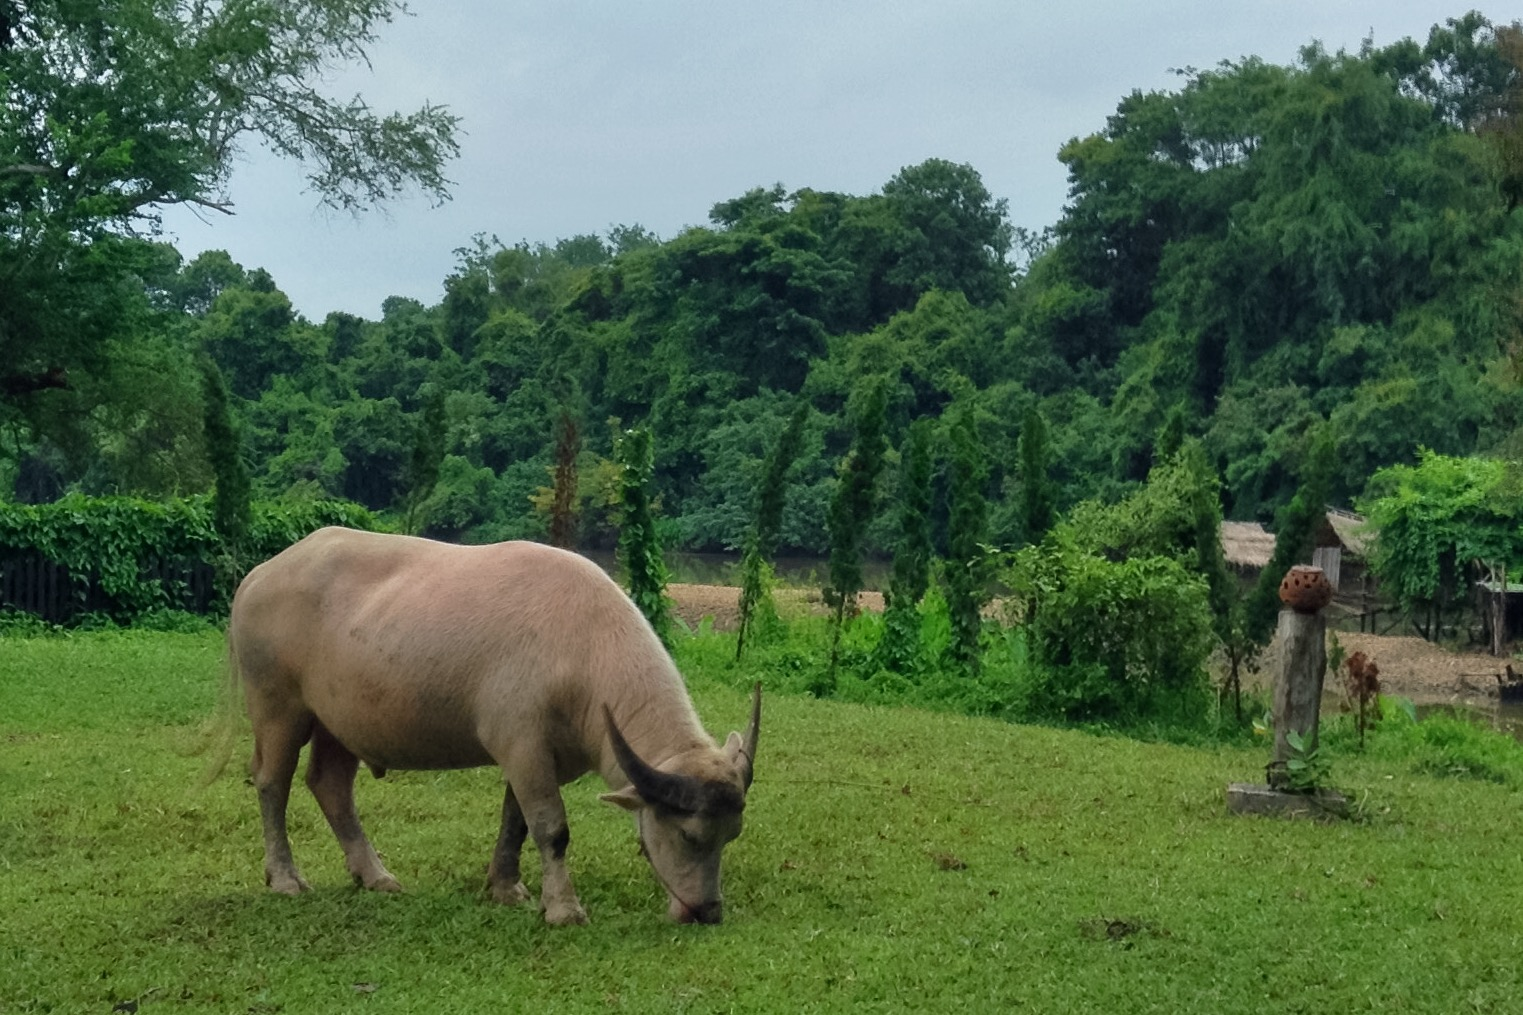 The carabaos here were extra chunky